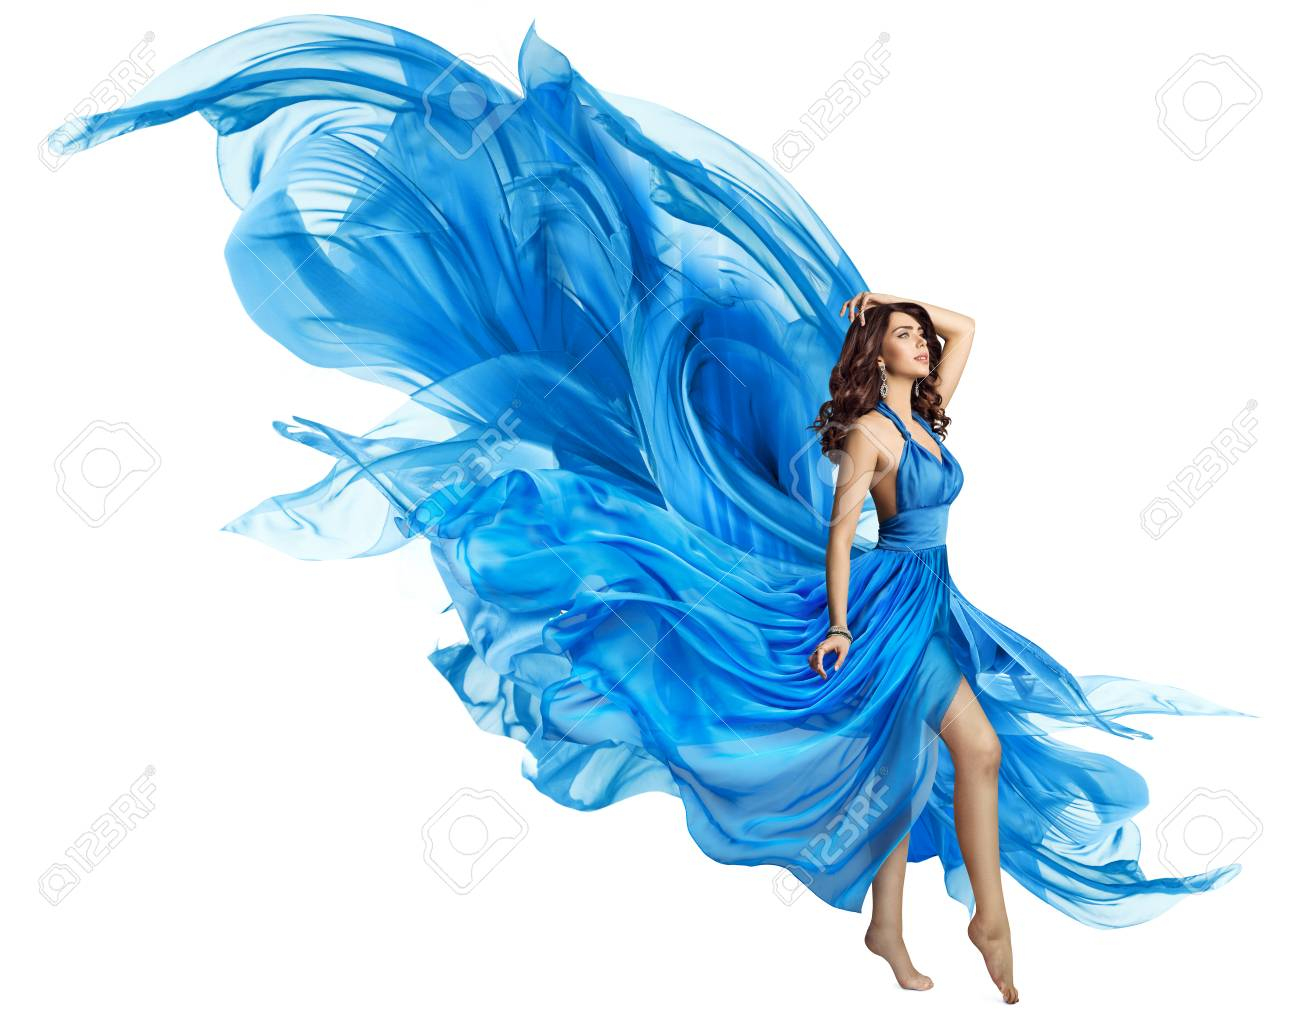 Woman Flying Blue Dress, Elegant Fashion Model in Fluttering Gown on White, Art Fabric Fly and Flutter on Wind - 95117811